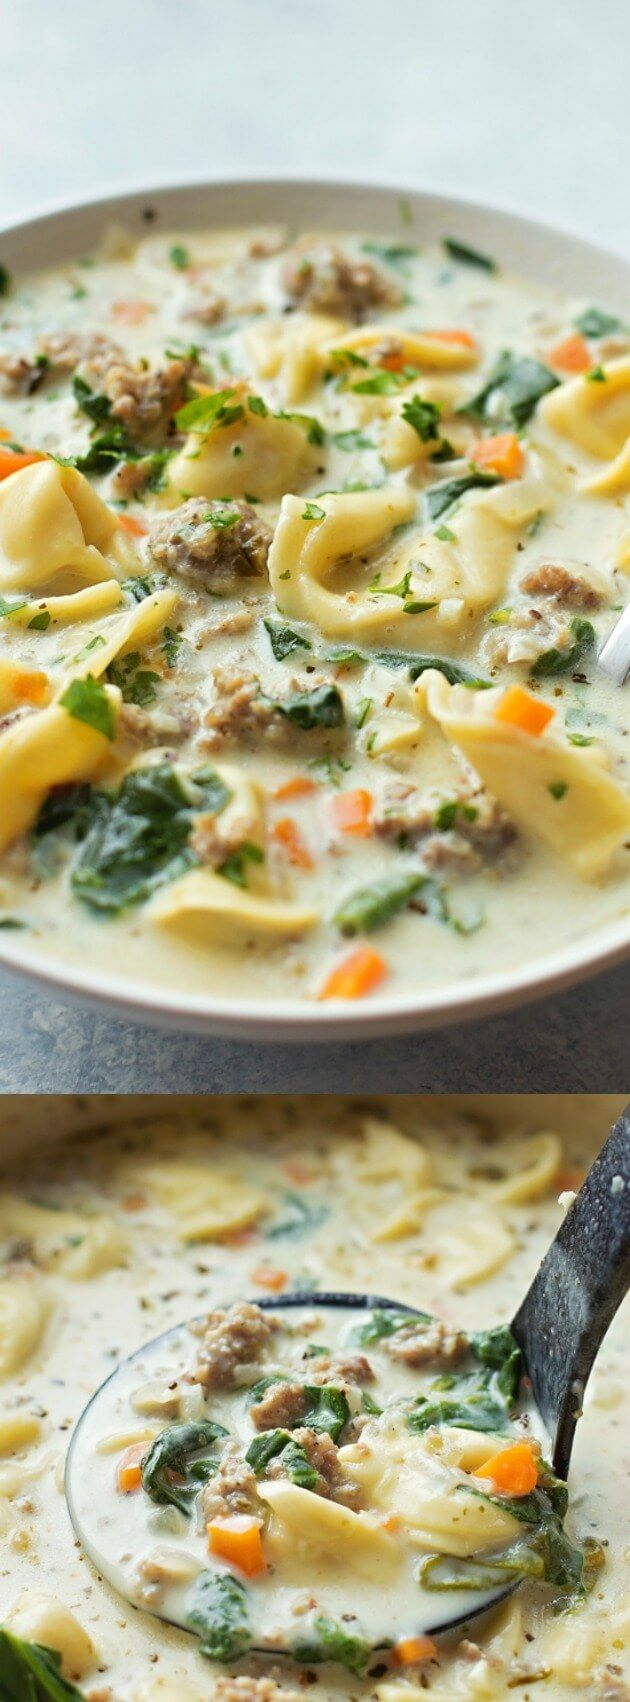 This Creamy Sausage and Tortellini Soup from Life Made Simple is a bowl full of comfort! Its loaded with veggies, sausage, and cheese tortellini!